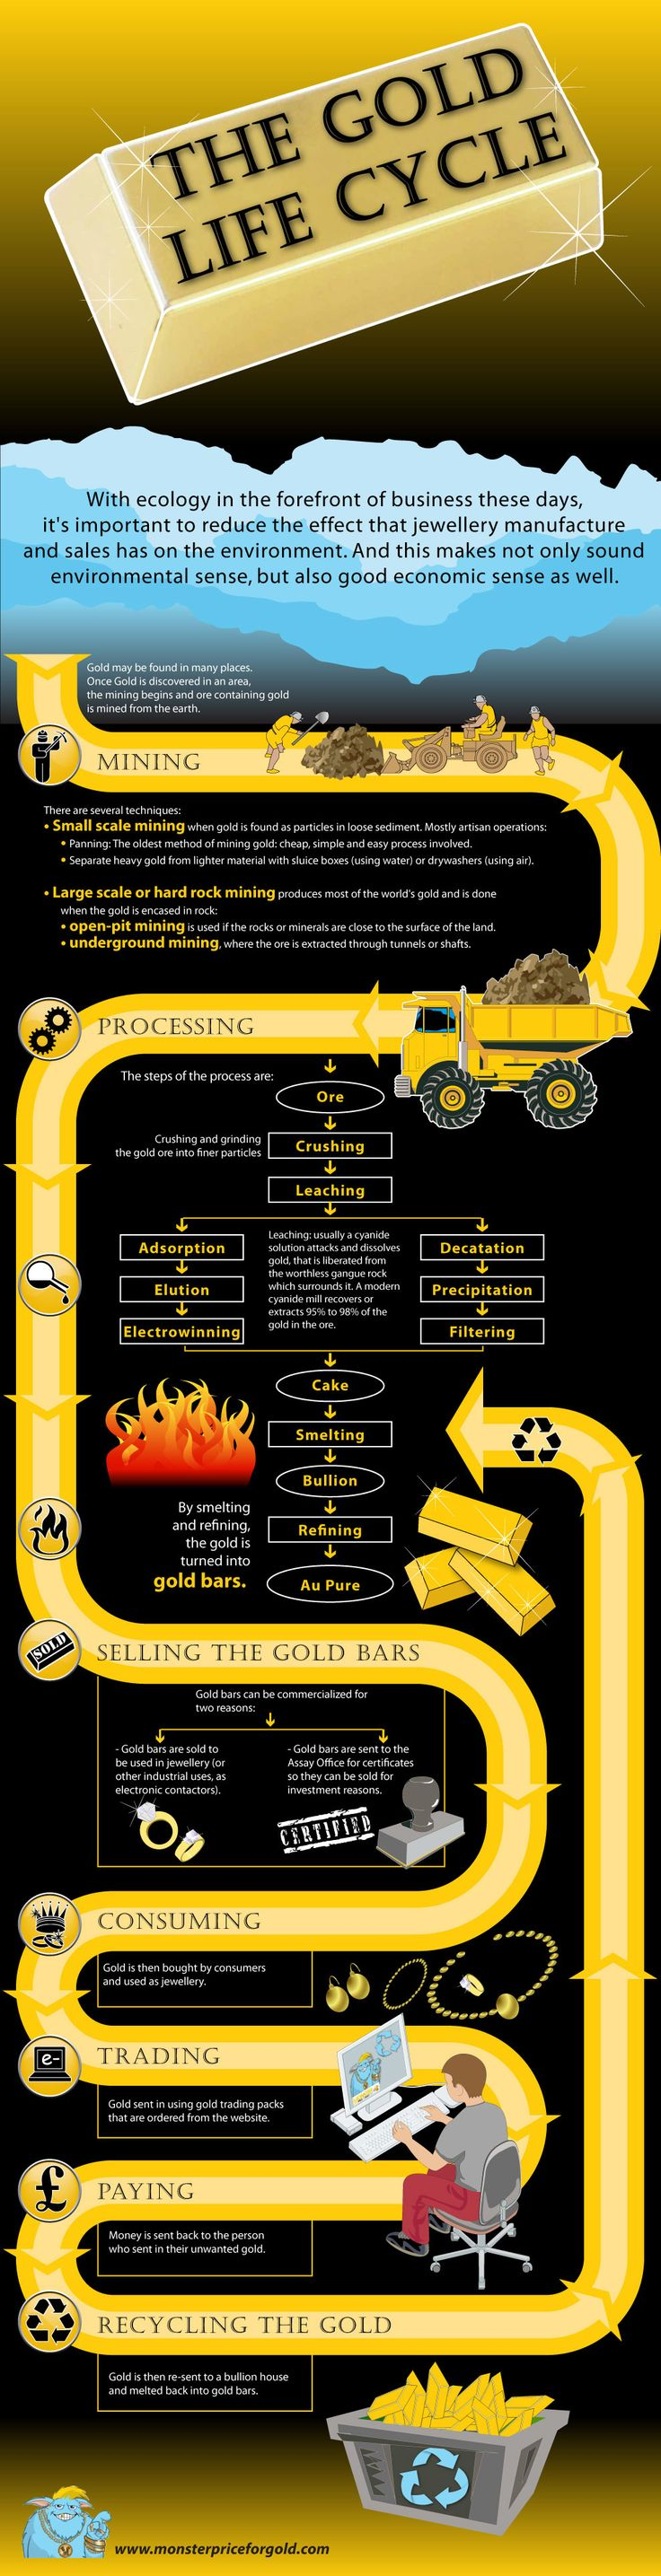 gold-life-cycle.jpg 989×3,857 pixels